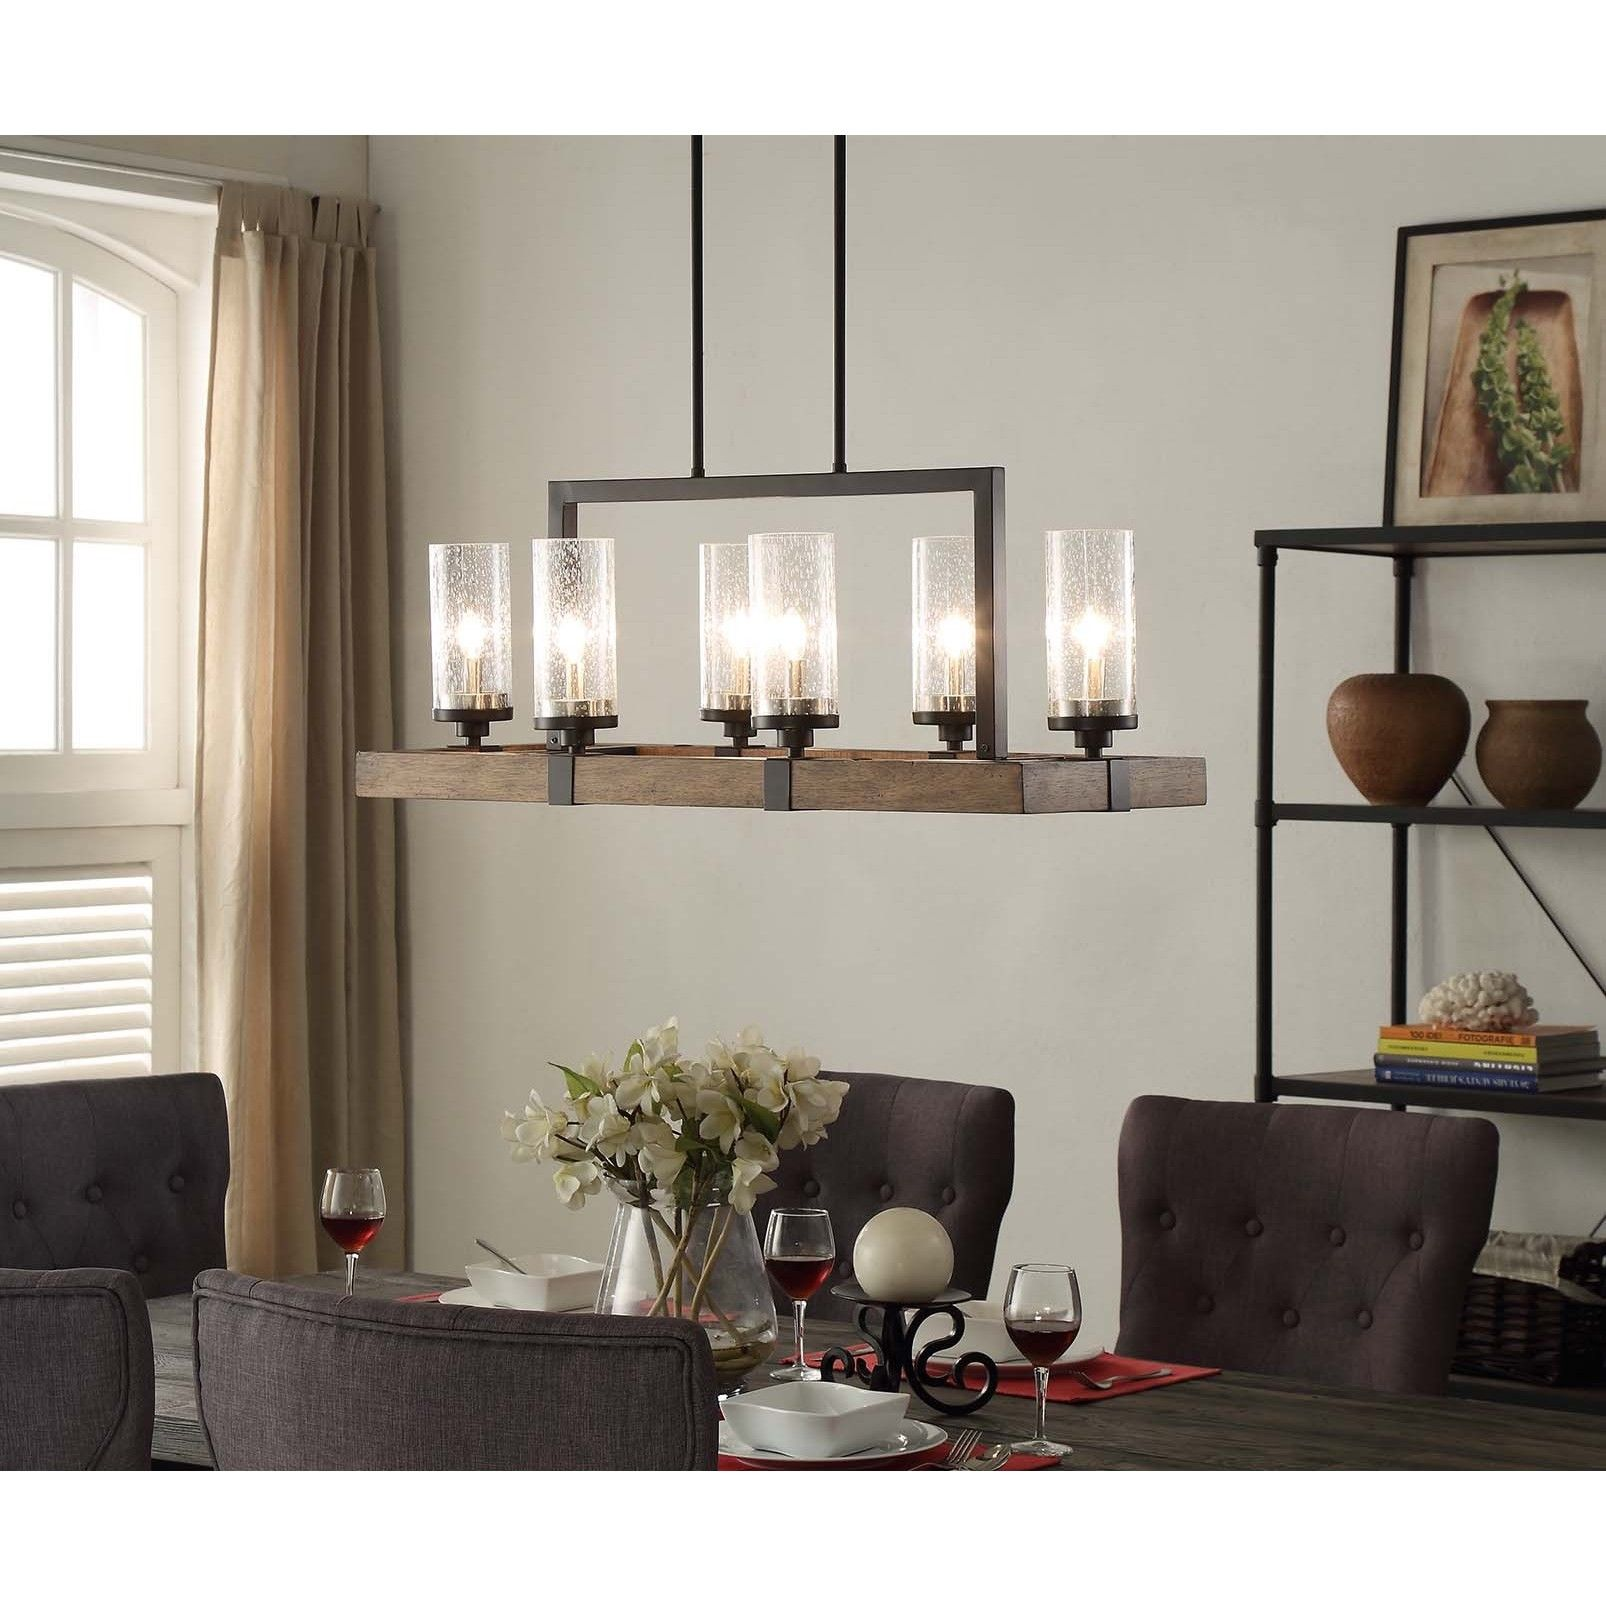 Illuminate your home with the rustic charm of the vineyard for Rectangular dining room light